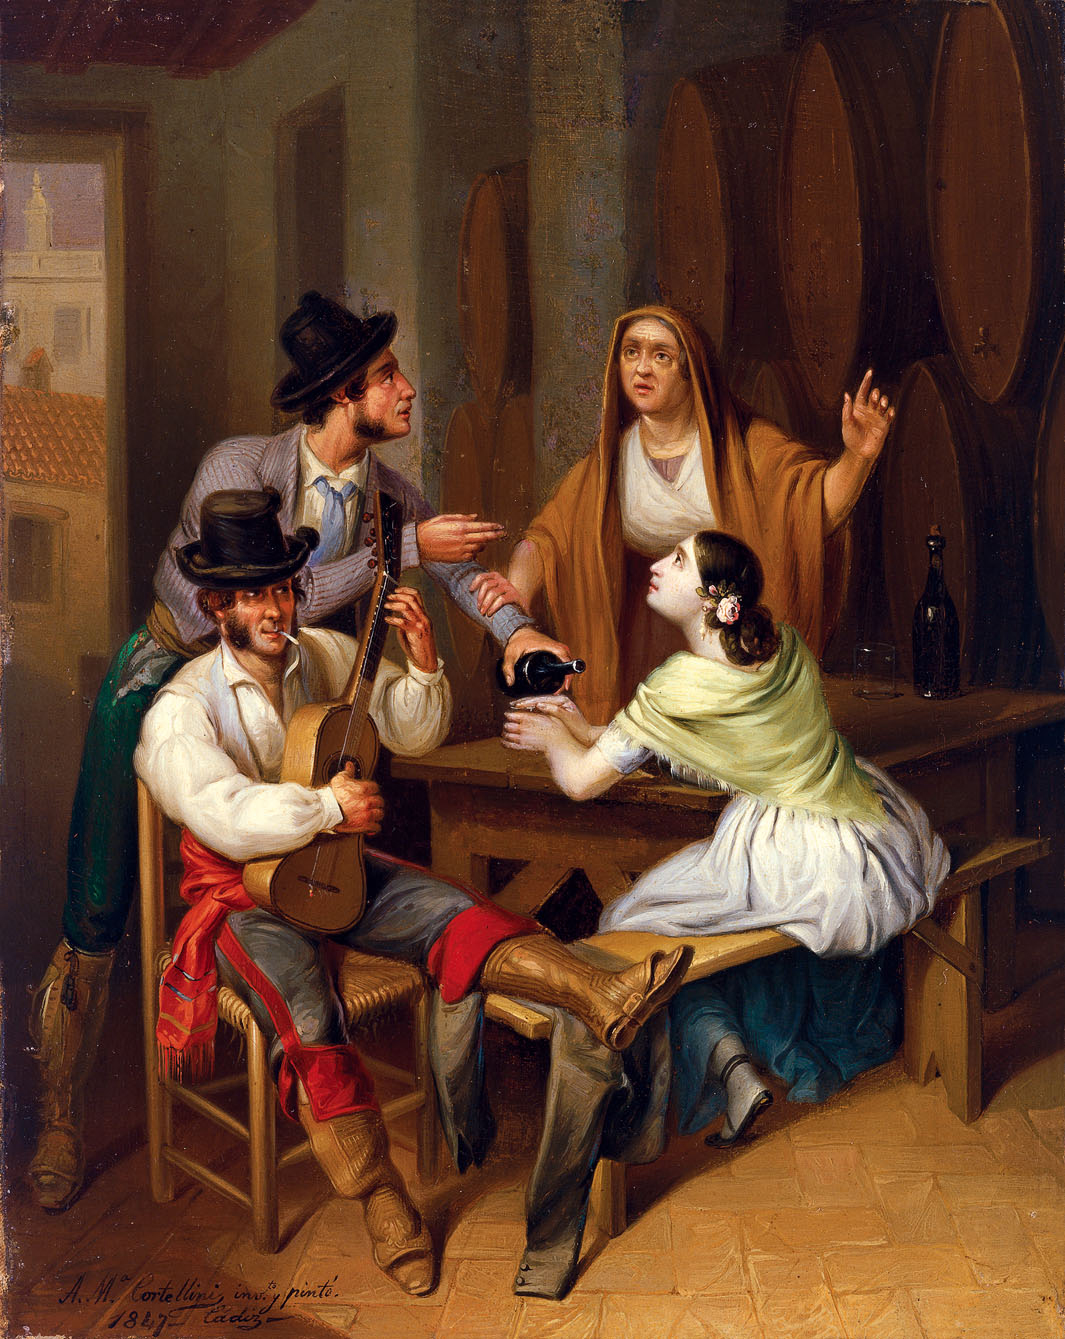 No more Wine. Tavern Scene